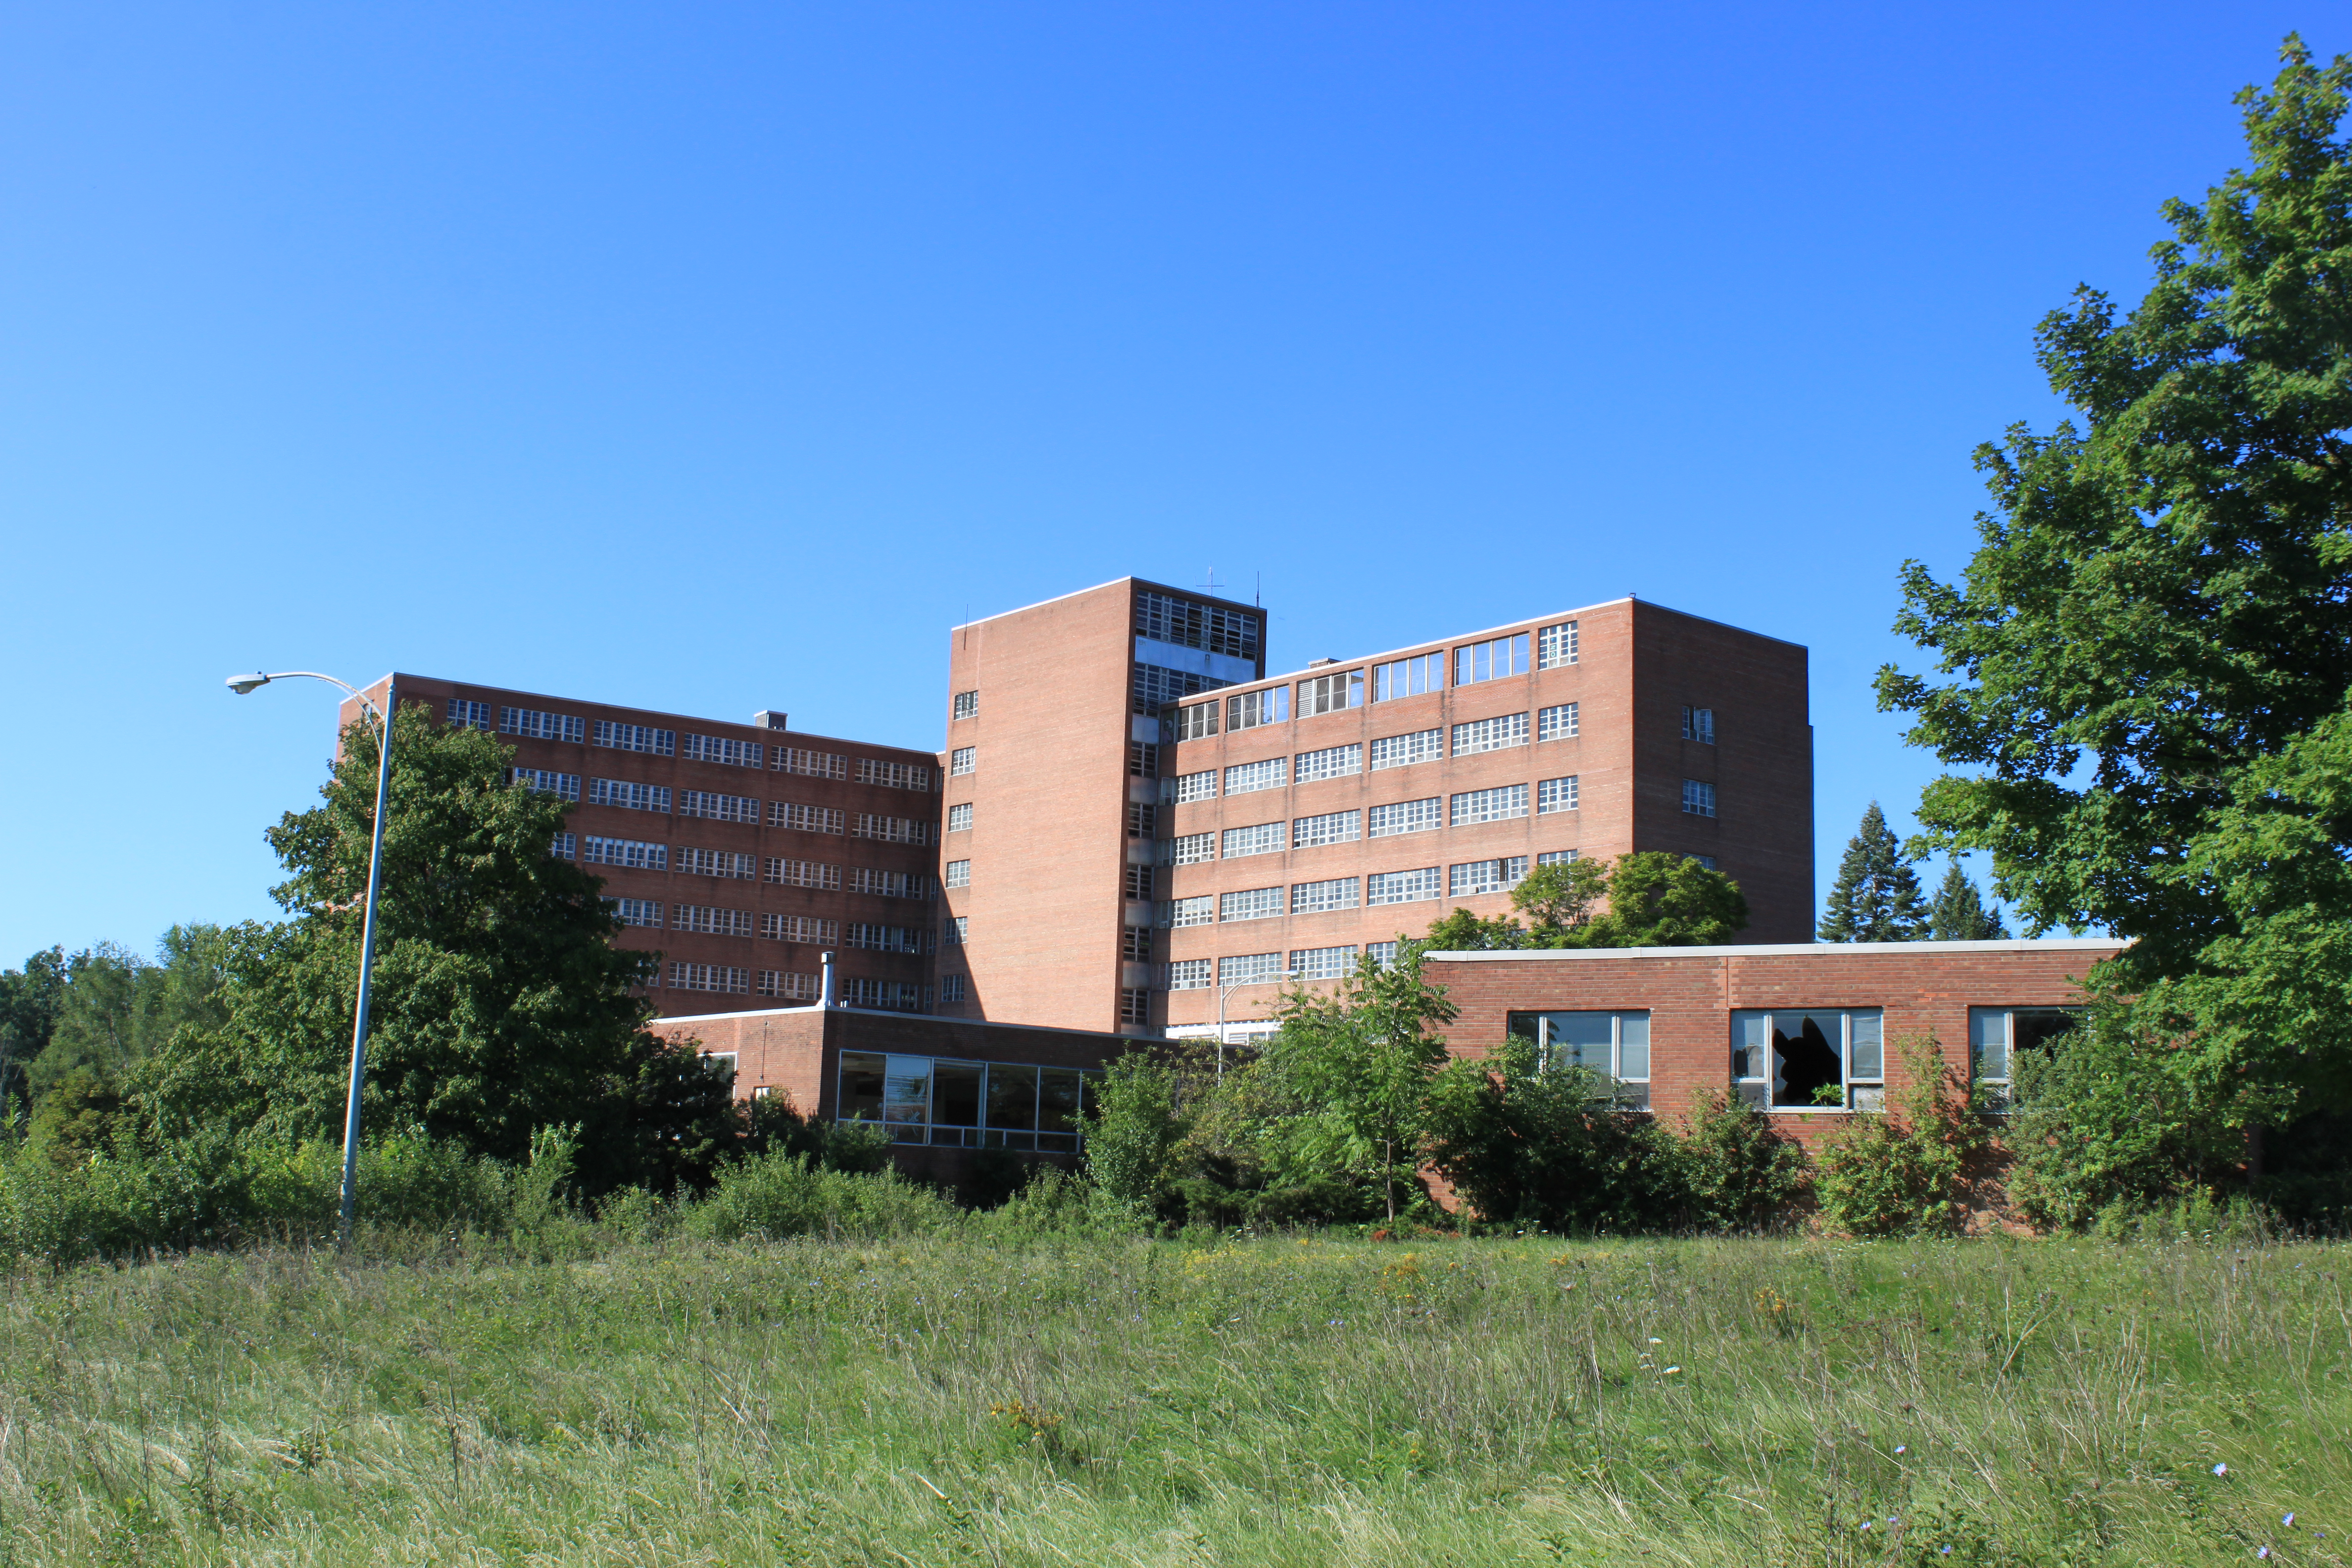 File Northville Psychiatric Hospital Northville Michigan Jpg Wikimedia Commons